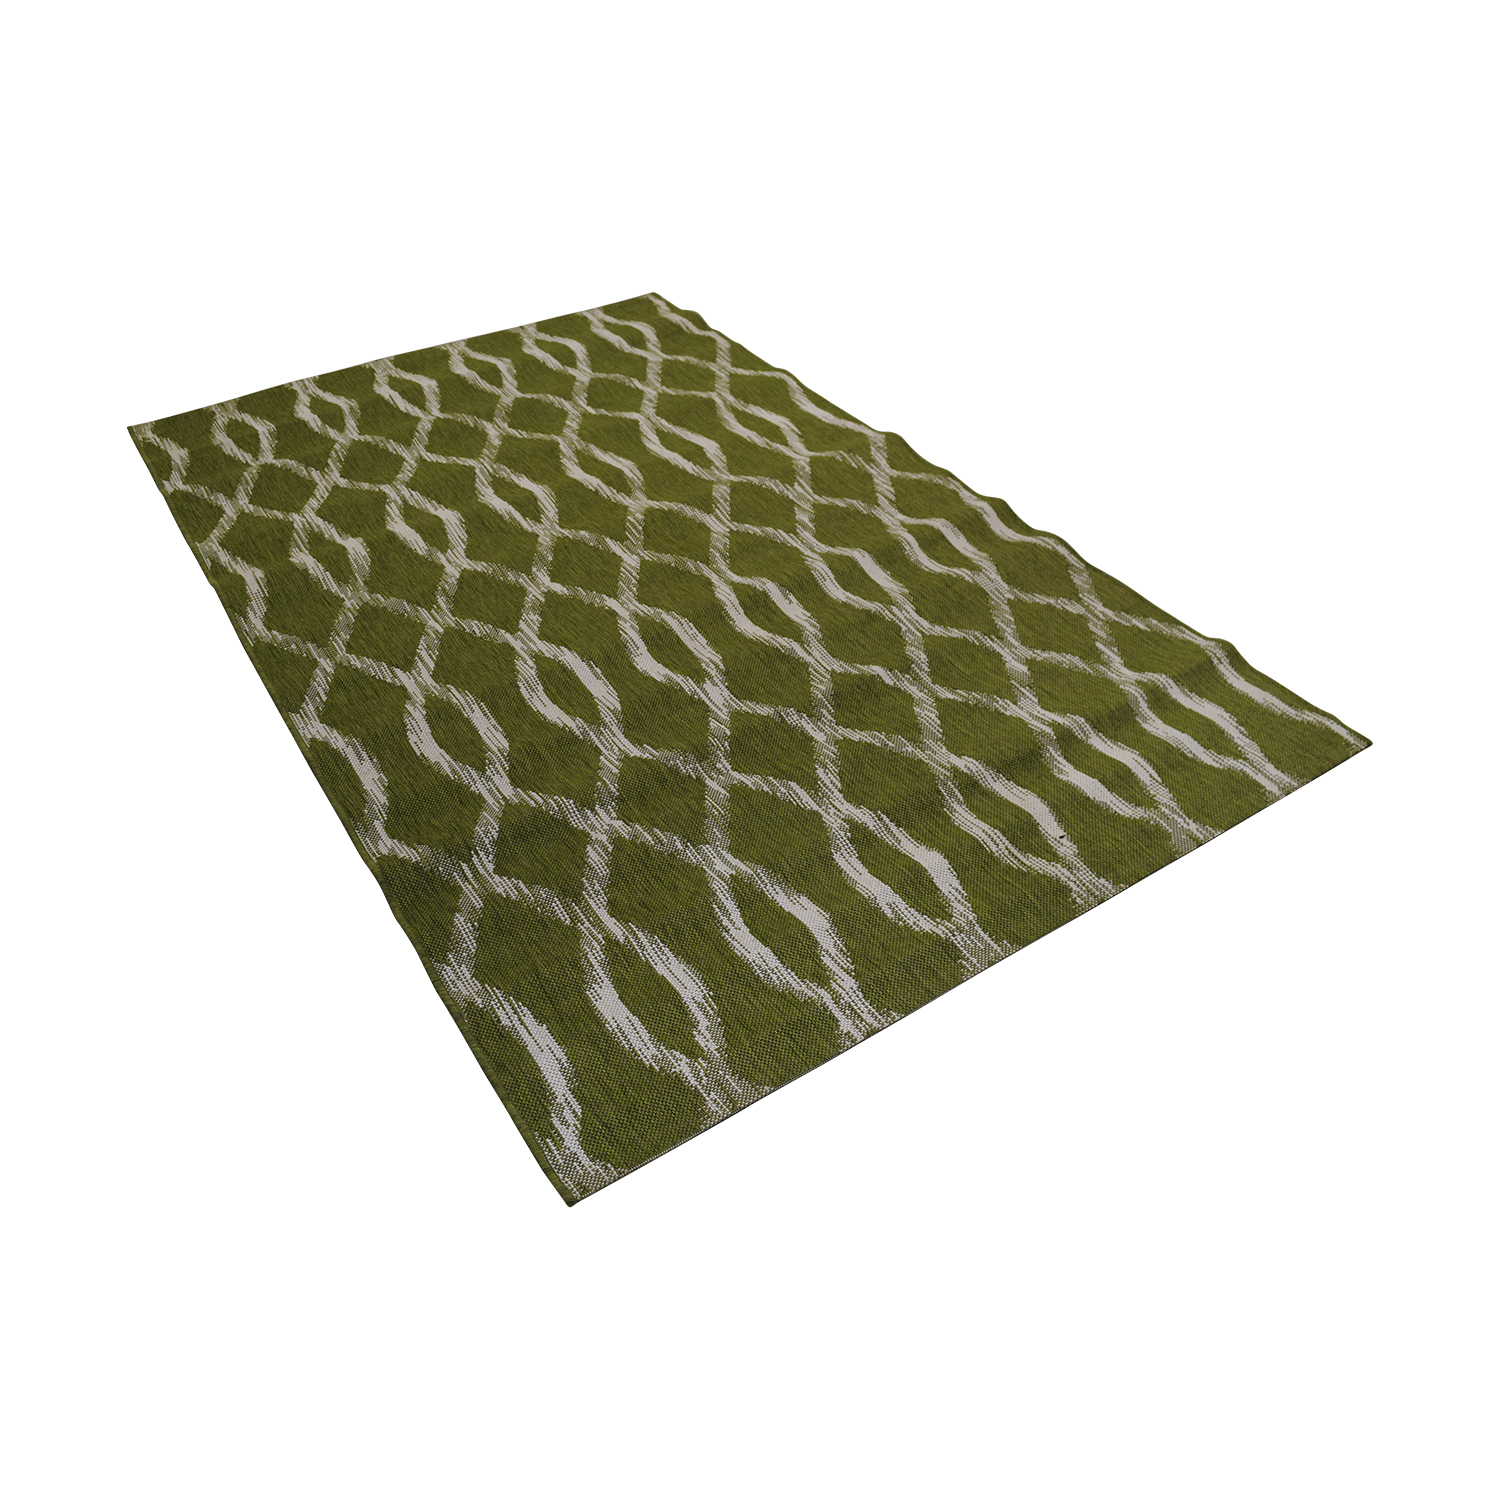 buy Crate & Barrel Indoor and Outdoor Green and White Rug Crate & Barrel Rugs